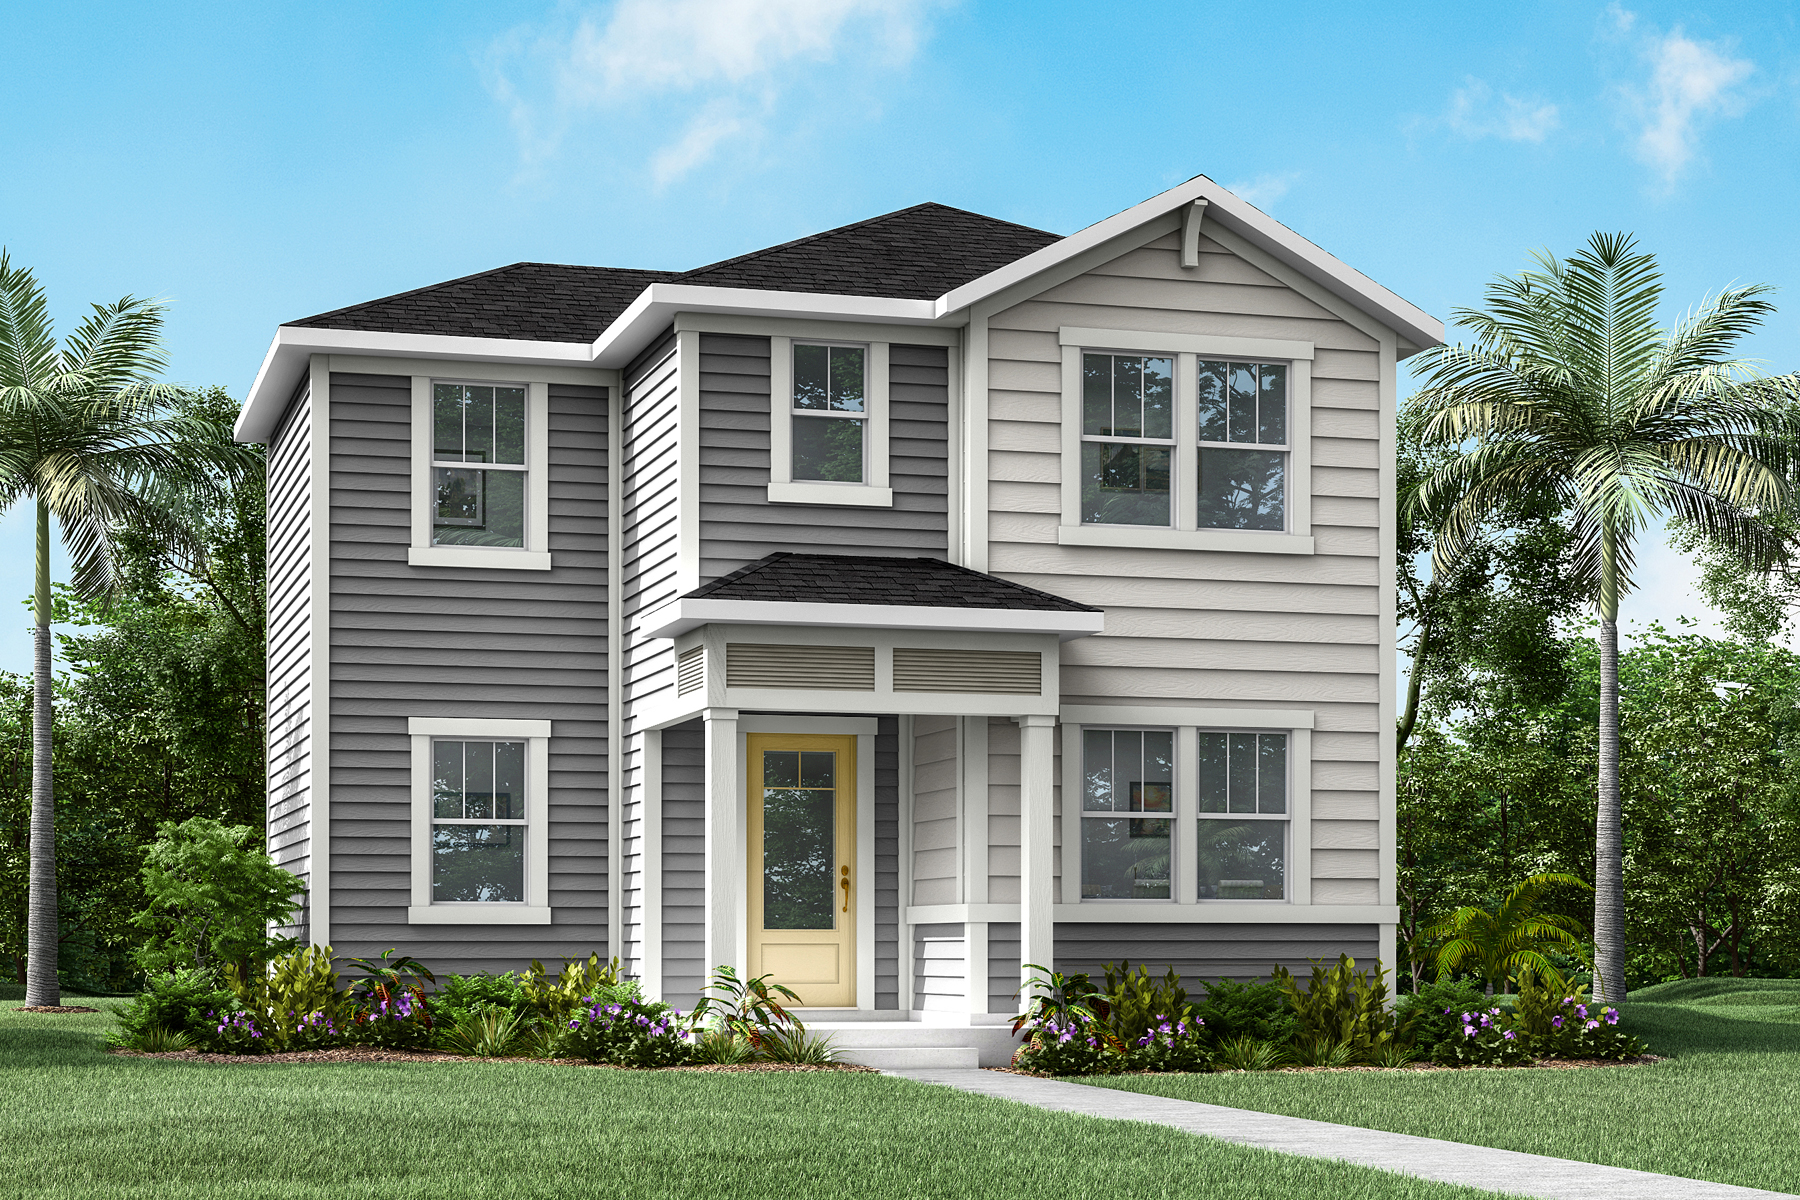 Lacey Plan Elevation Front at Forest Park at Wildlight in Yulee Florida by Mattamy Homes